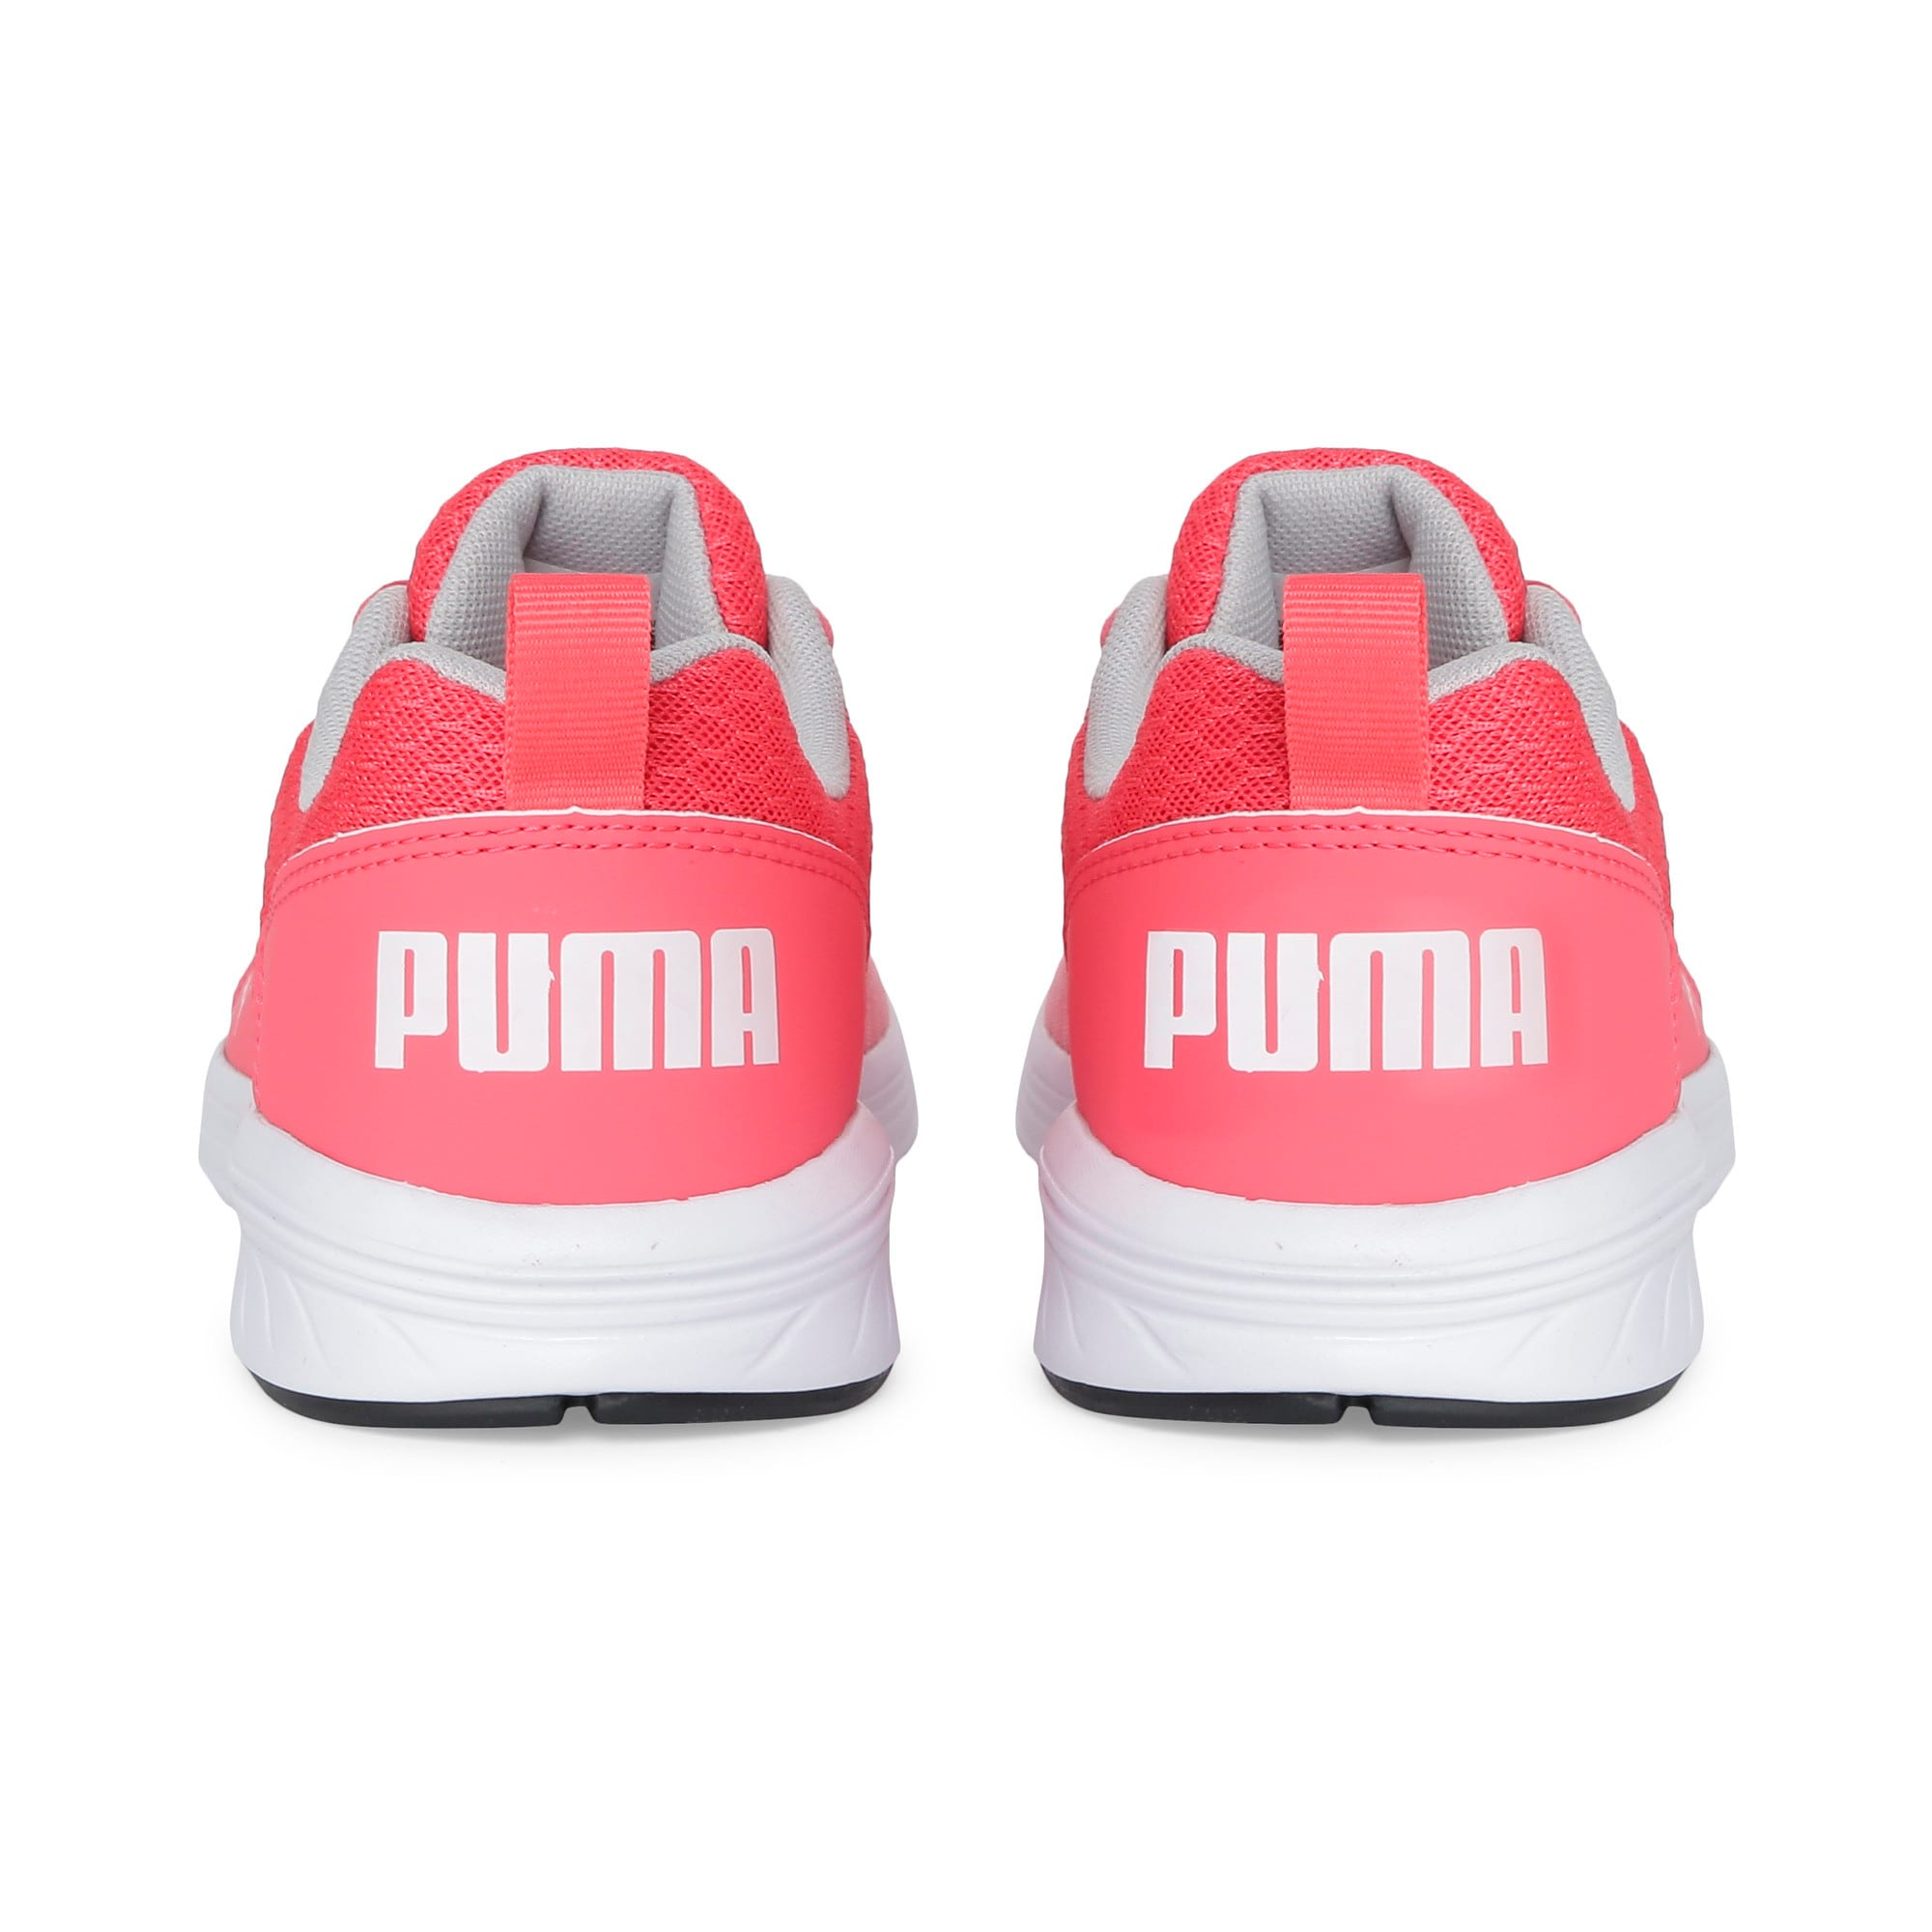 Thumbnail 3 of NRGY Comet Kids' Training Shoes, Calypso Coral-Puma White, medium-IND